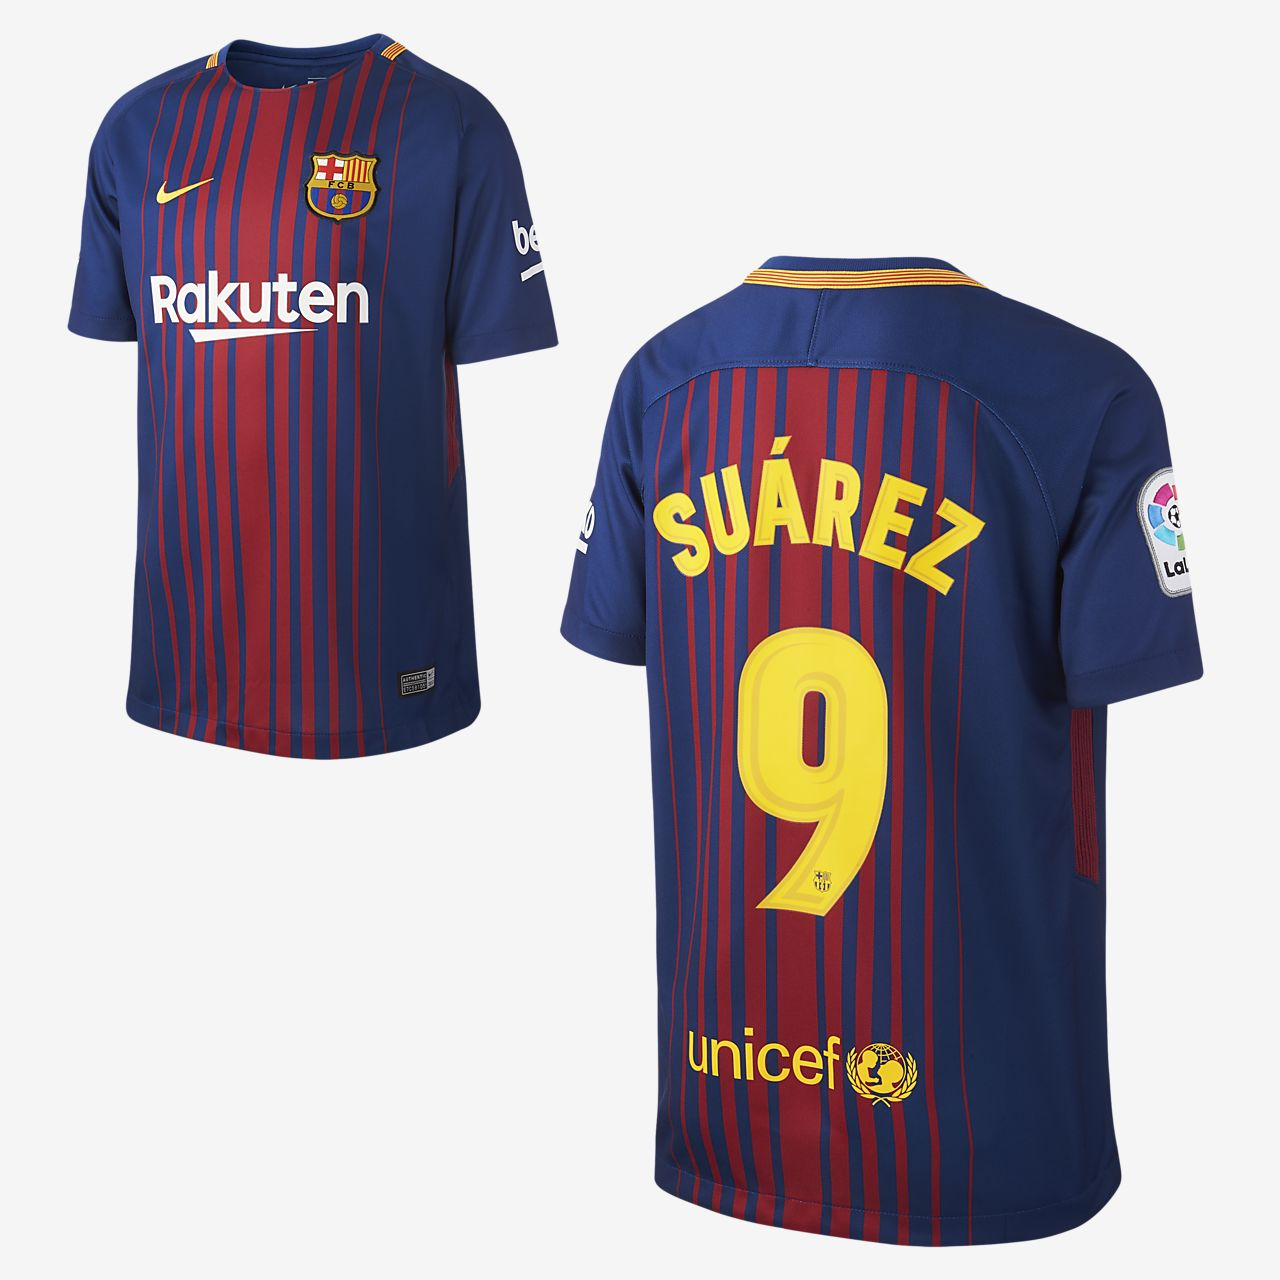 huge selection of 5c6c2 71715 2017/18 FC Barcelona Home (Luis Suárez) Older Kids' Football Shirt